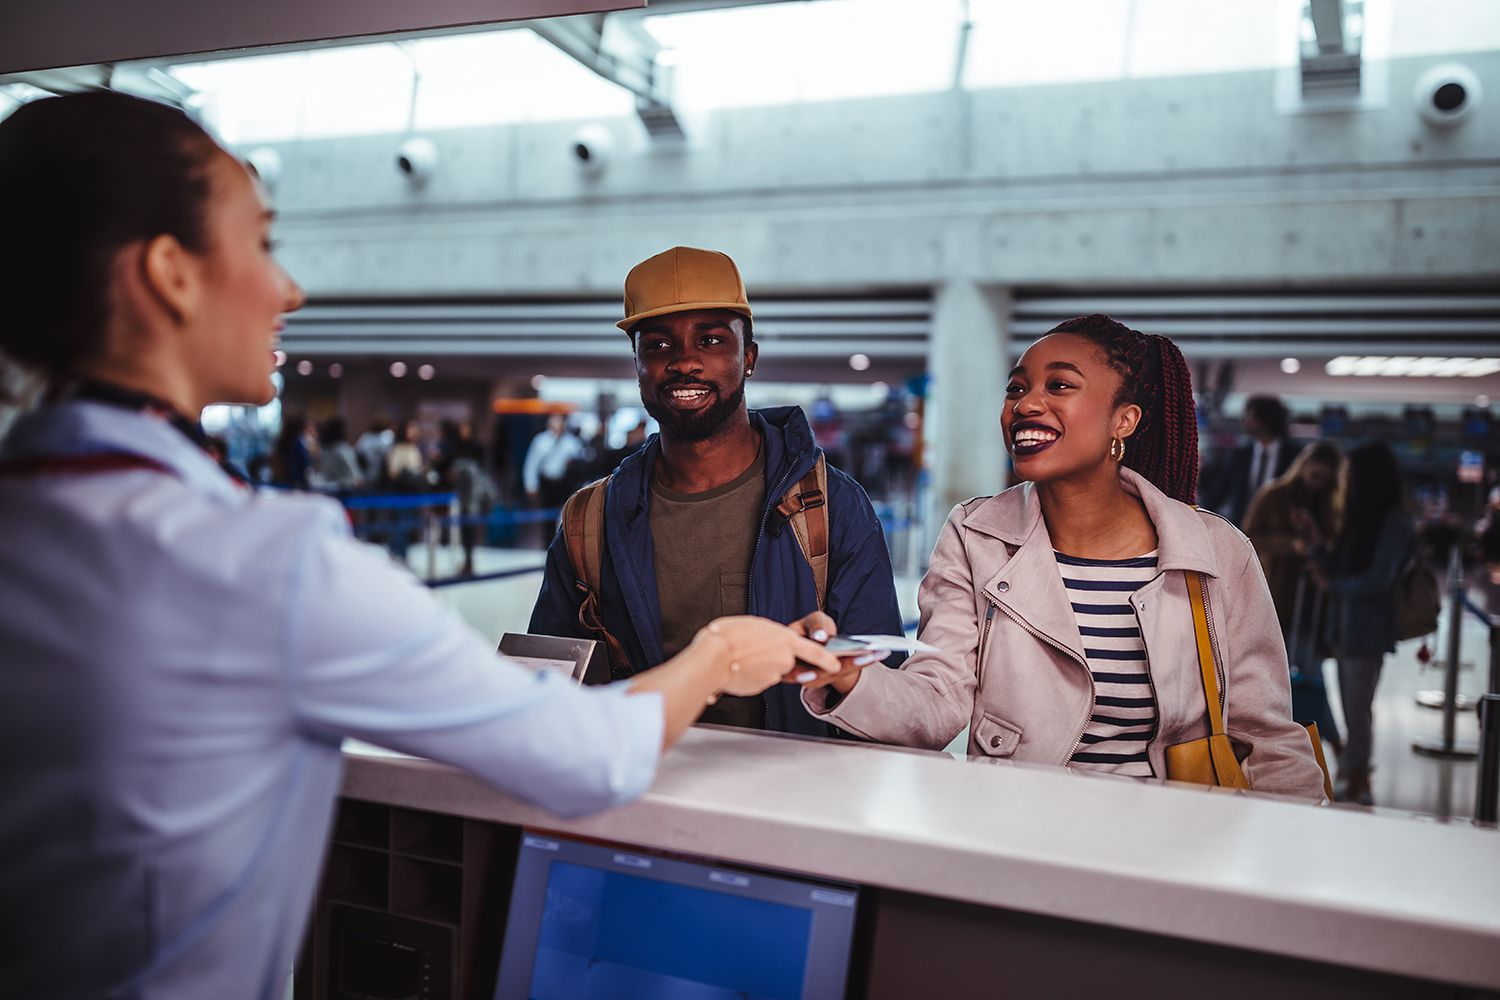 Young passengers doing check-in for flight at airport